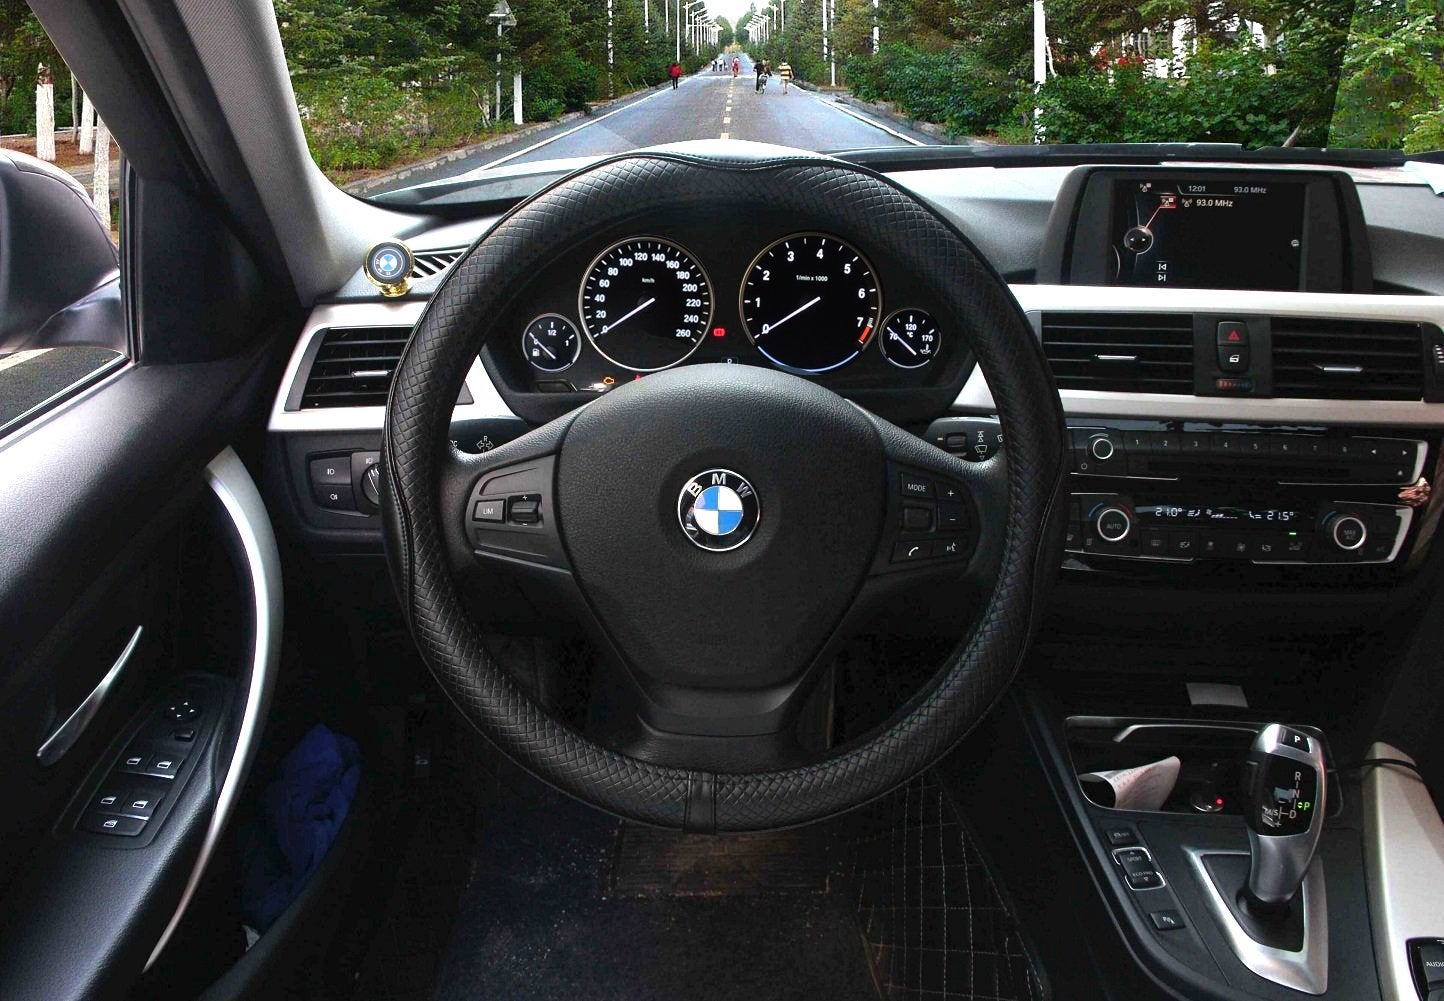 A steering wheel cover prevents hand-cramping